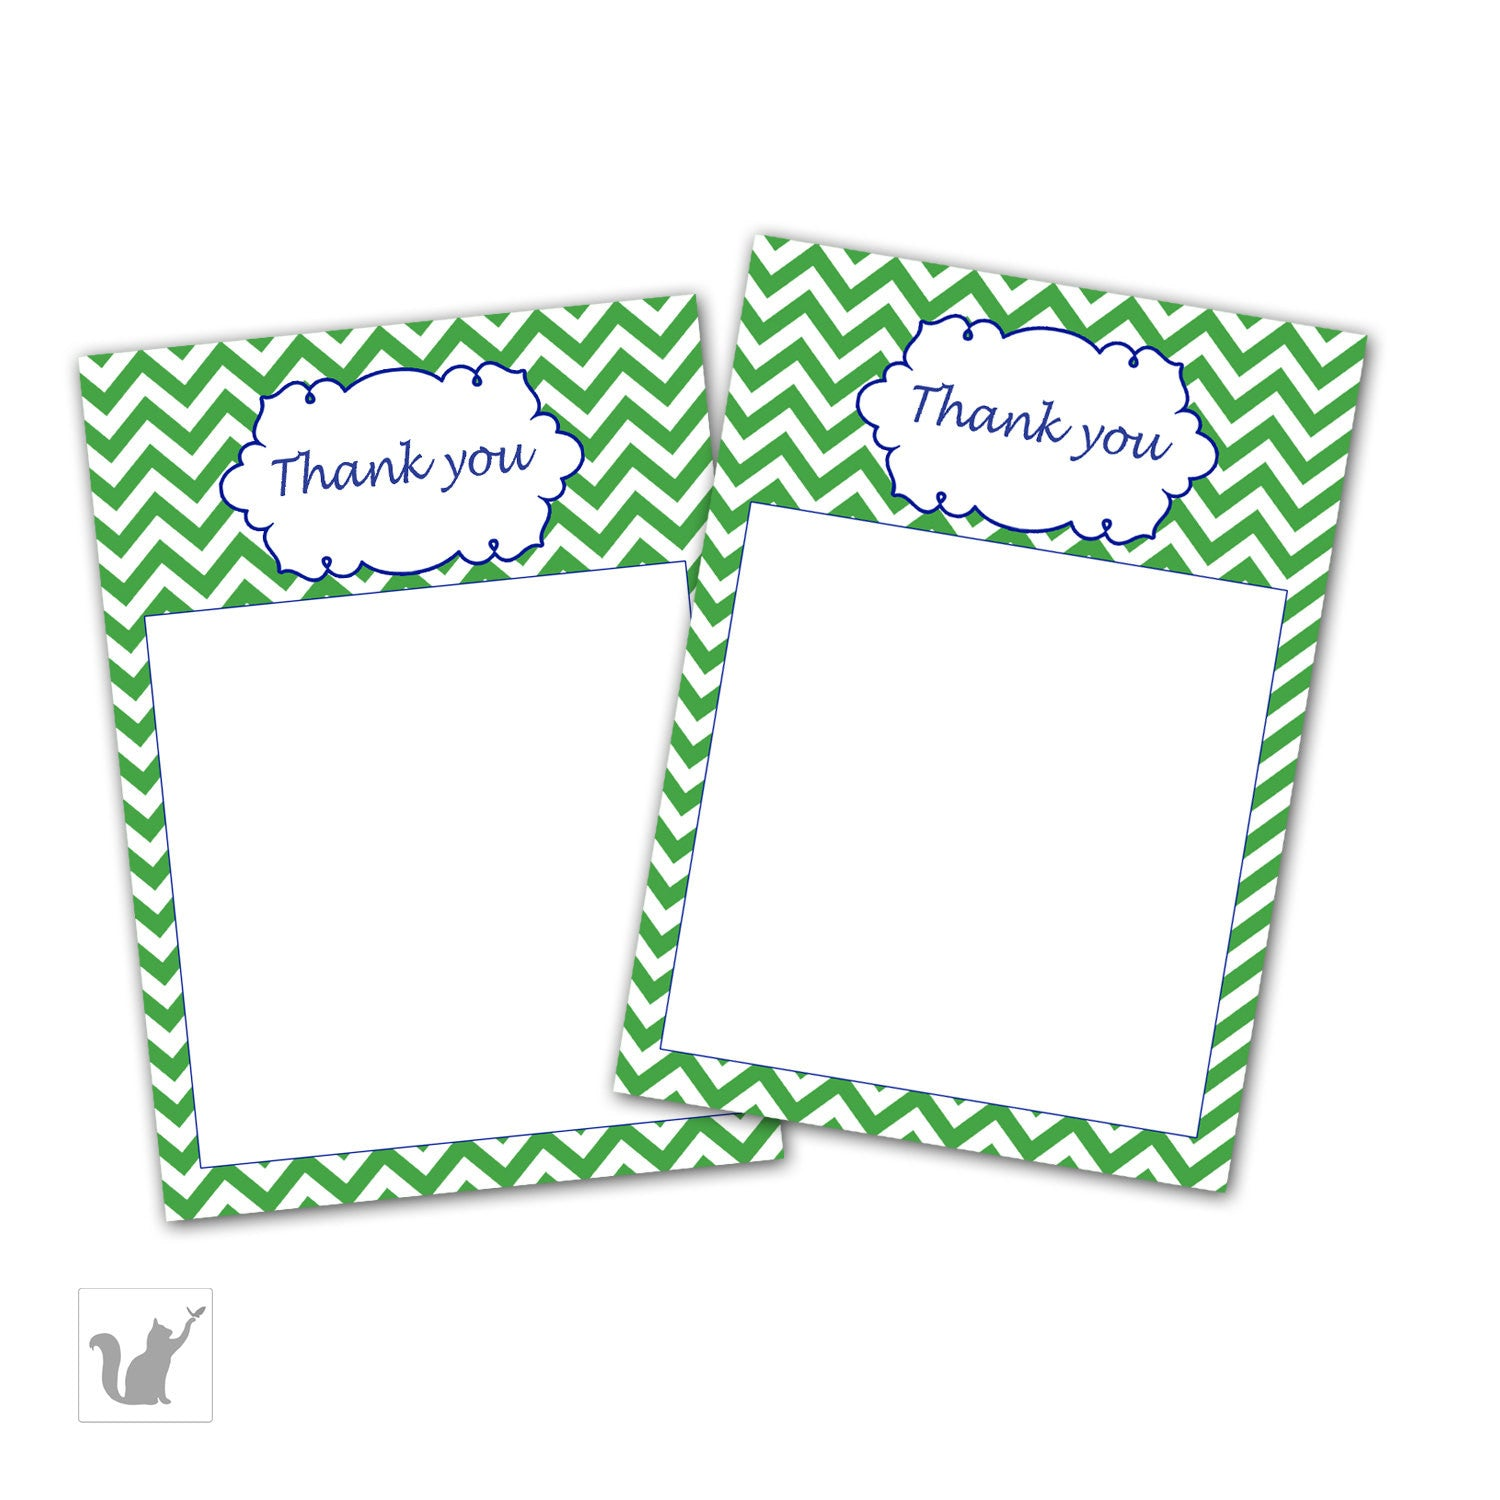 green chevron party thank you card zig zag birthday blank thank you card baby shower card note diy party item instant download - Baby Shower Card Note